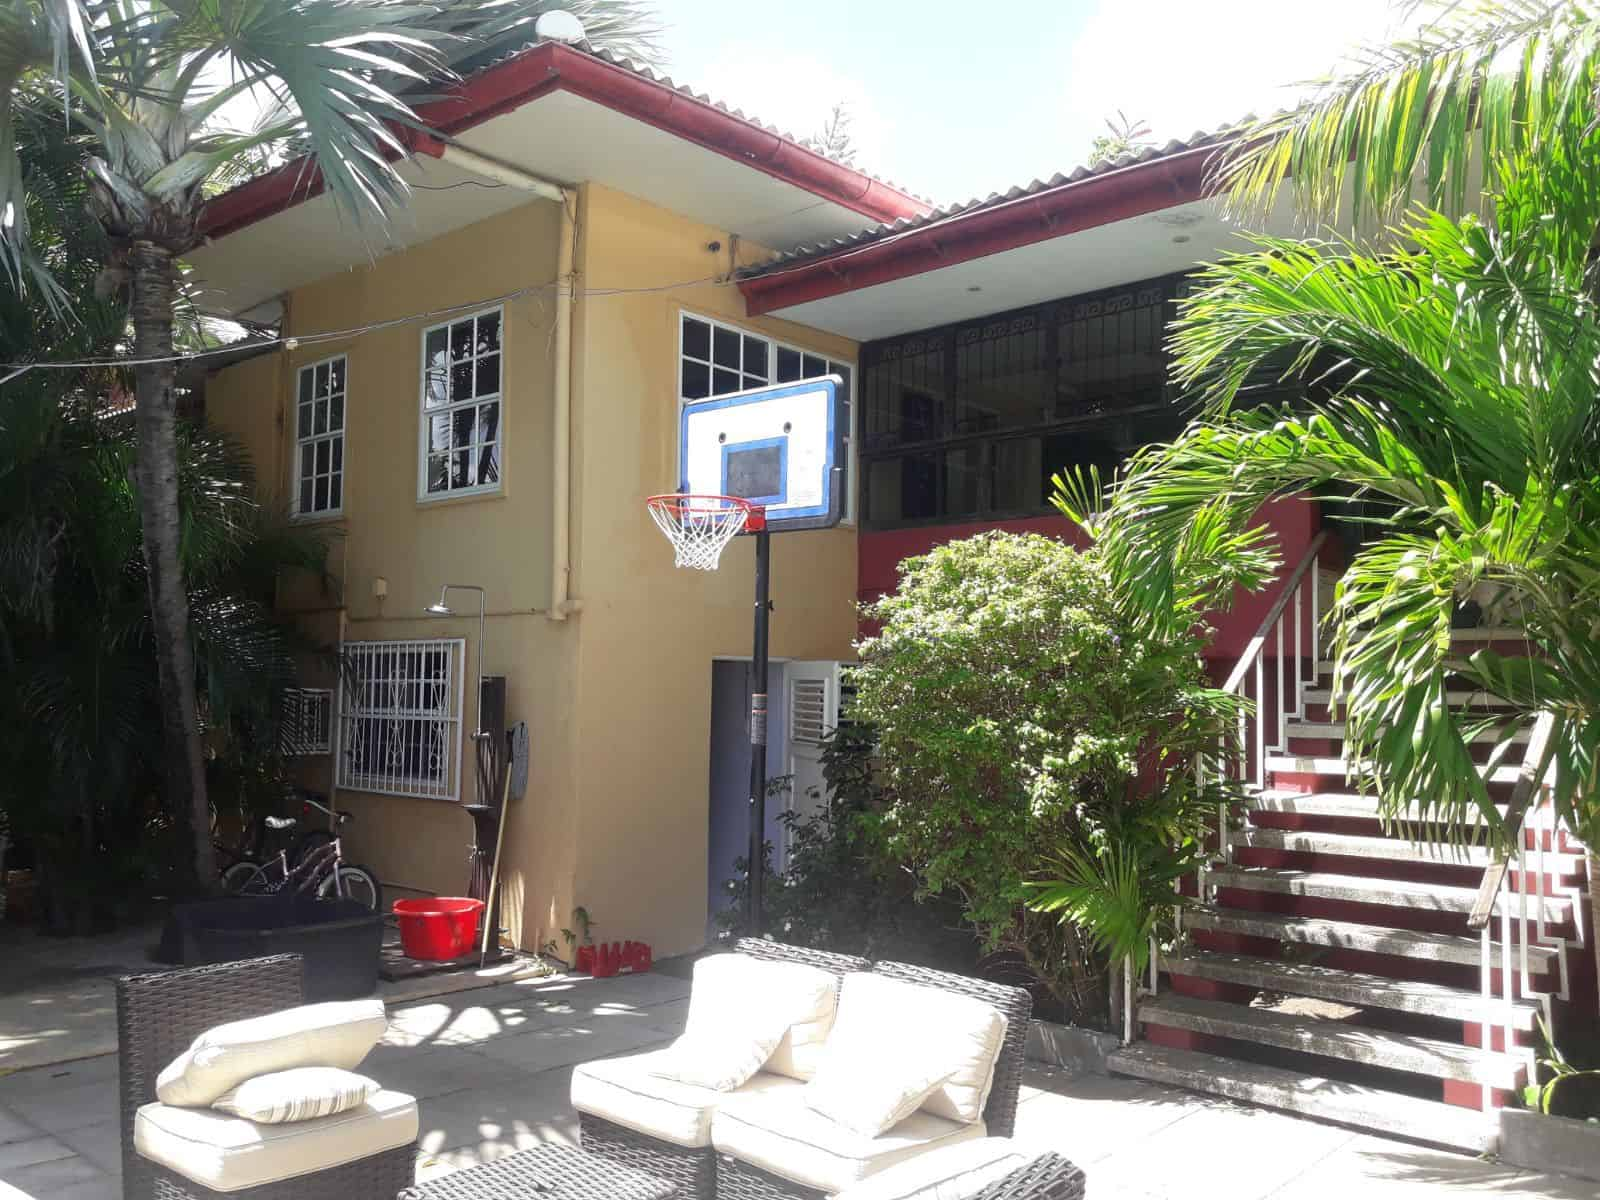 Villa Te Koop Curacao Ruime Villa In Damacor Te Koop Curacao - At Home Curacao